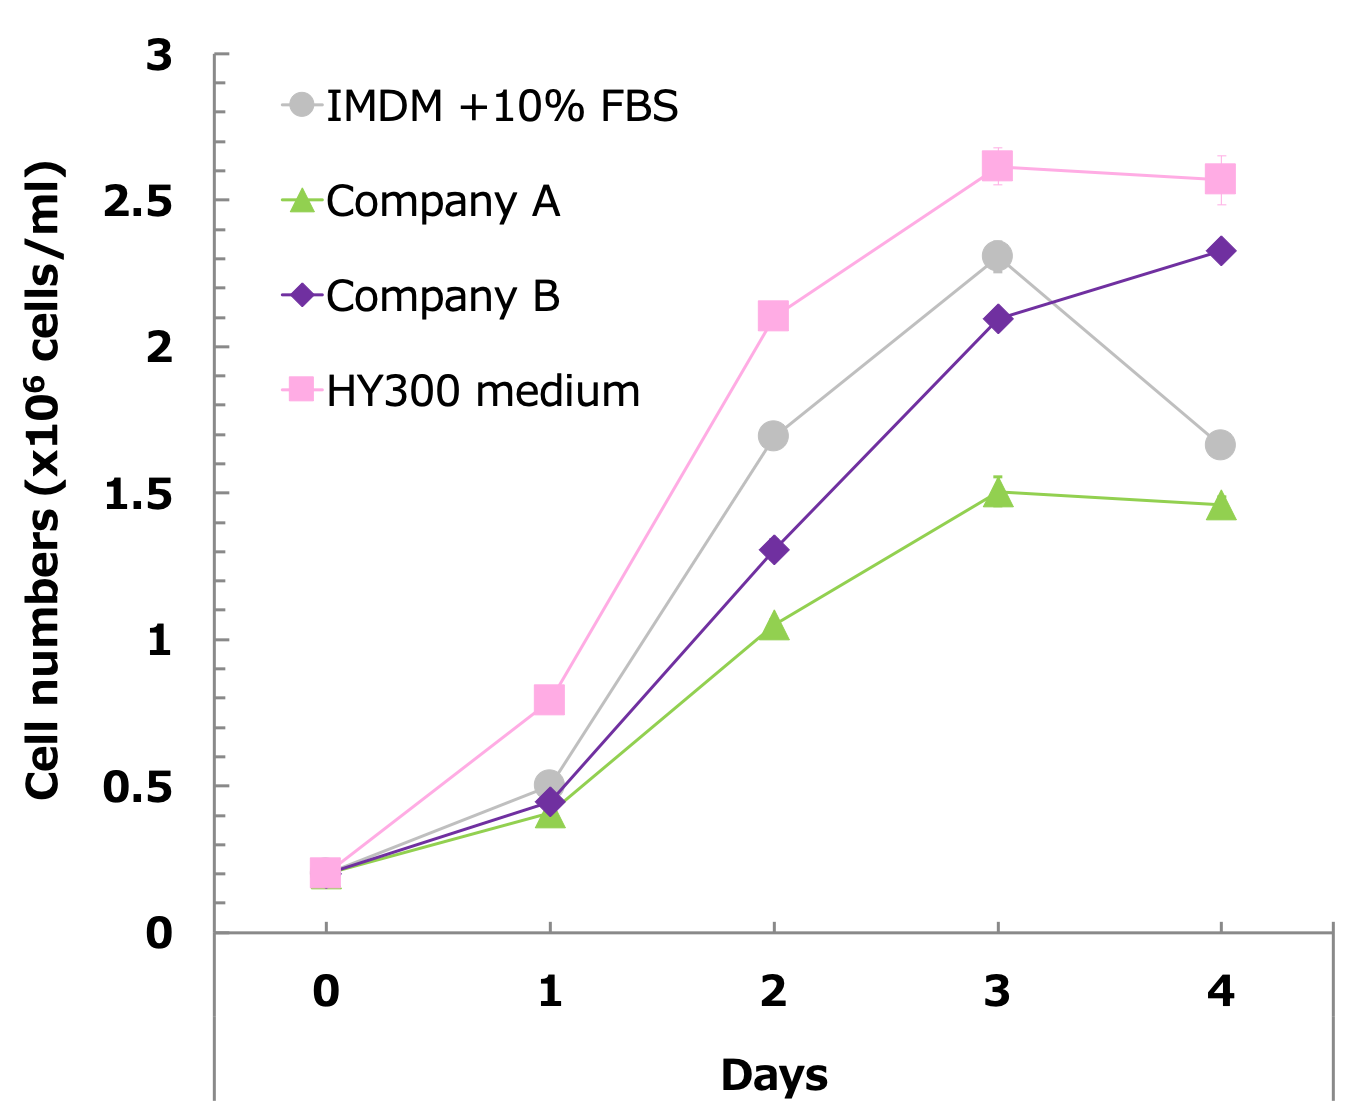 Rat Hybridoma BF11 Cells Subcultured In IMDM With 10 FBS Were Directly Inoculated At 20 X 10e5 ML And Incubated Into HY300 Medium 5 4 MM